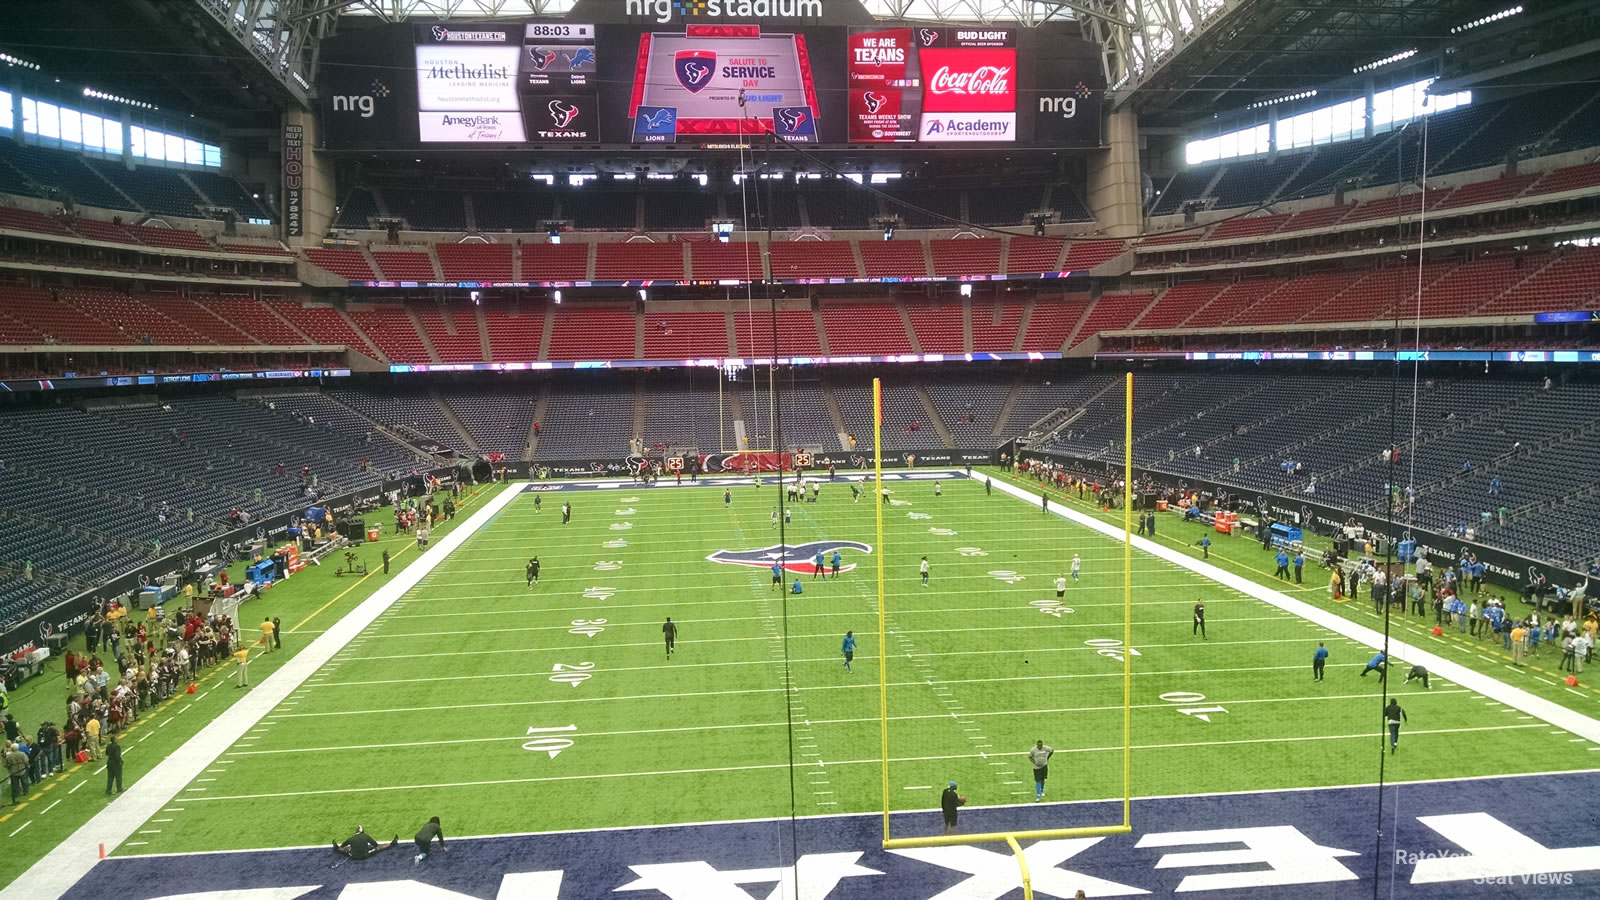 Houston Texans Seat View for NRG Stadium Section 352, Row A